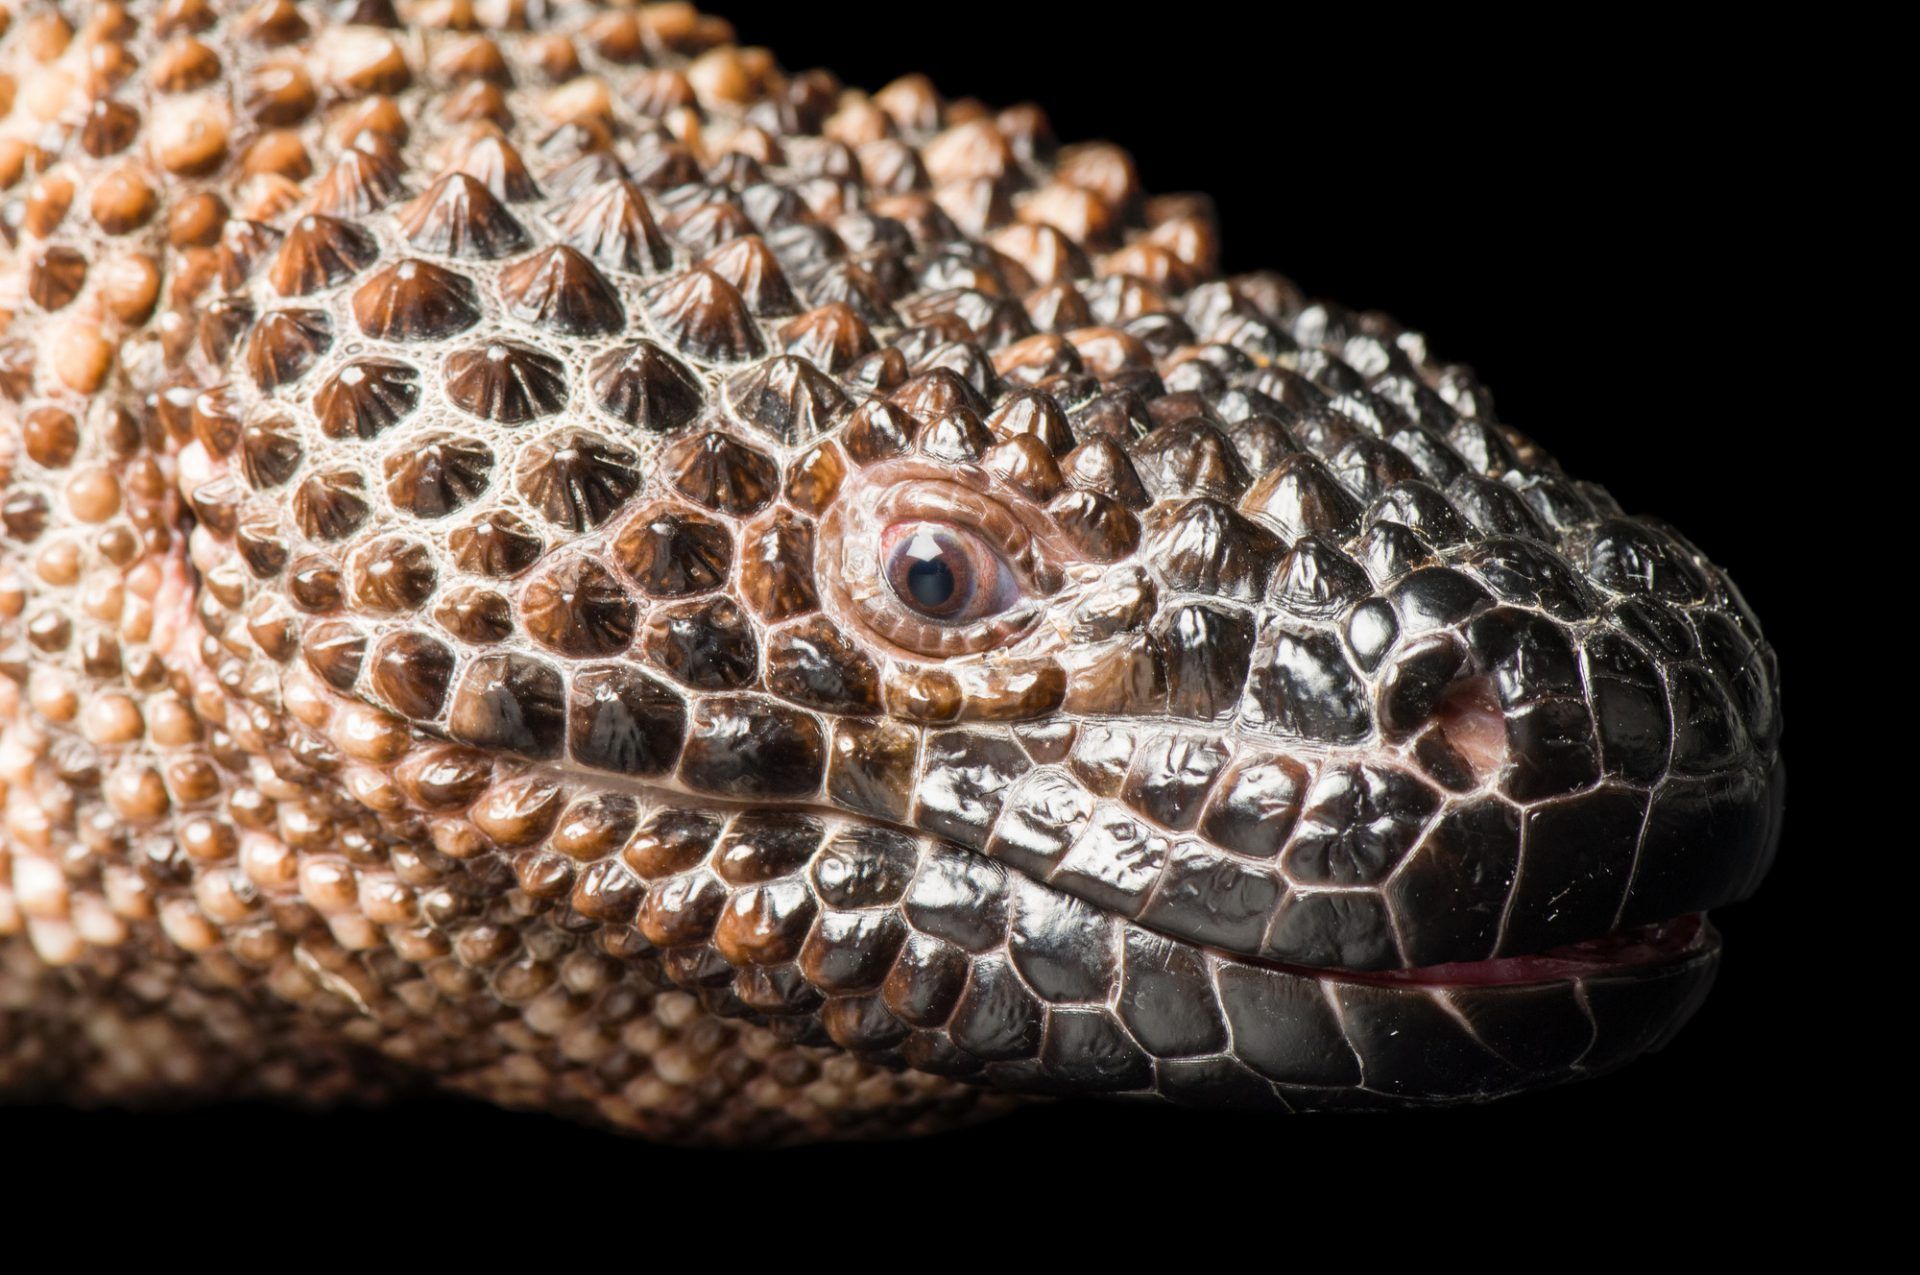 A beaded lizard (Heloderma horridum exasperatum) at Reptile Gardens.